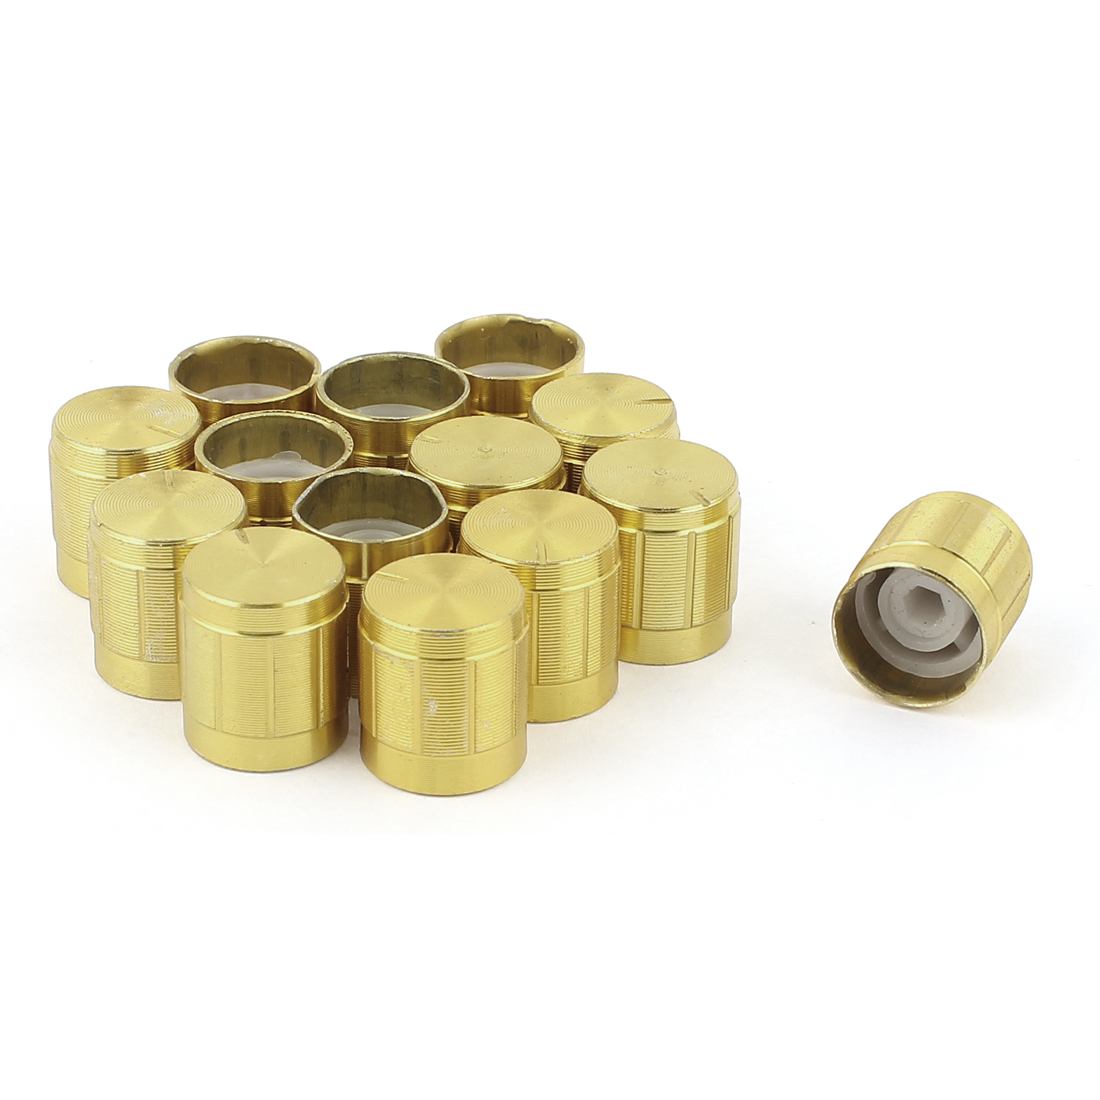 14 Pcs Gold Tone Volume Control Rotary Knobs for 6mm Dia Knurled Shaft Potentiometer